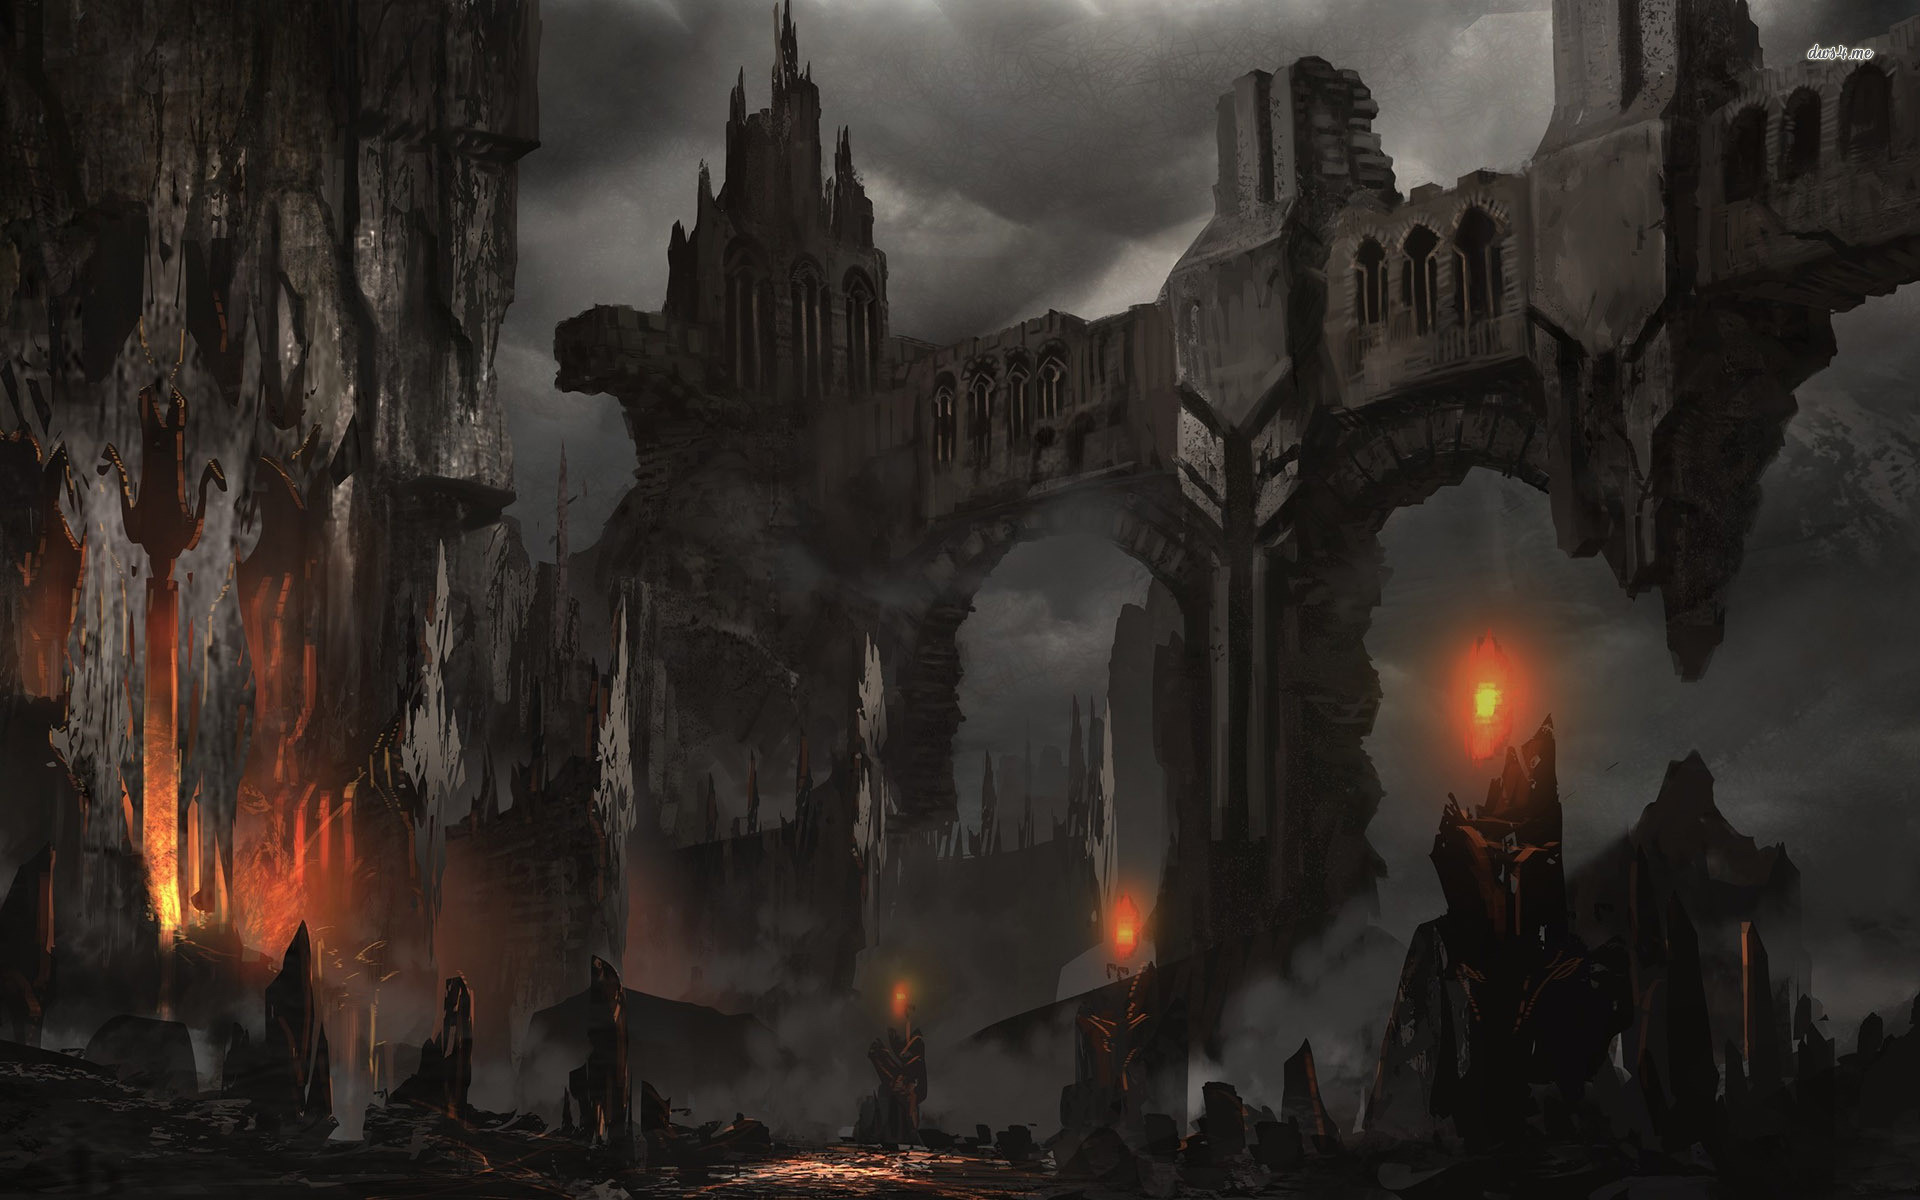 1920x1200 Fantasy Dark Castle Wallpaper Hd Background Wallpaper 16 HD Wallpapers